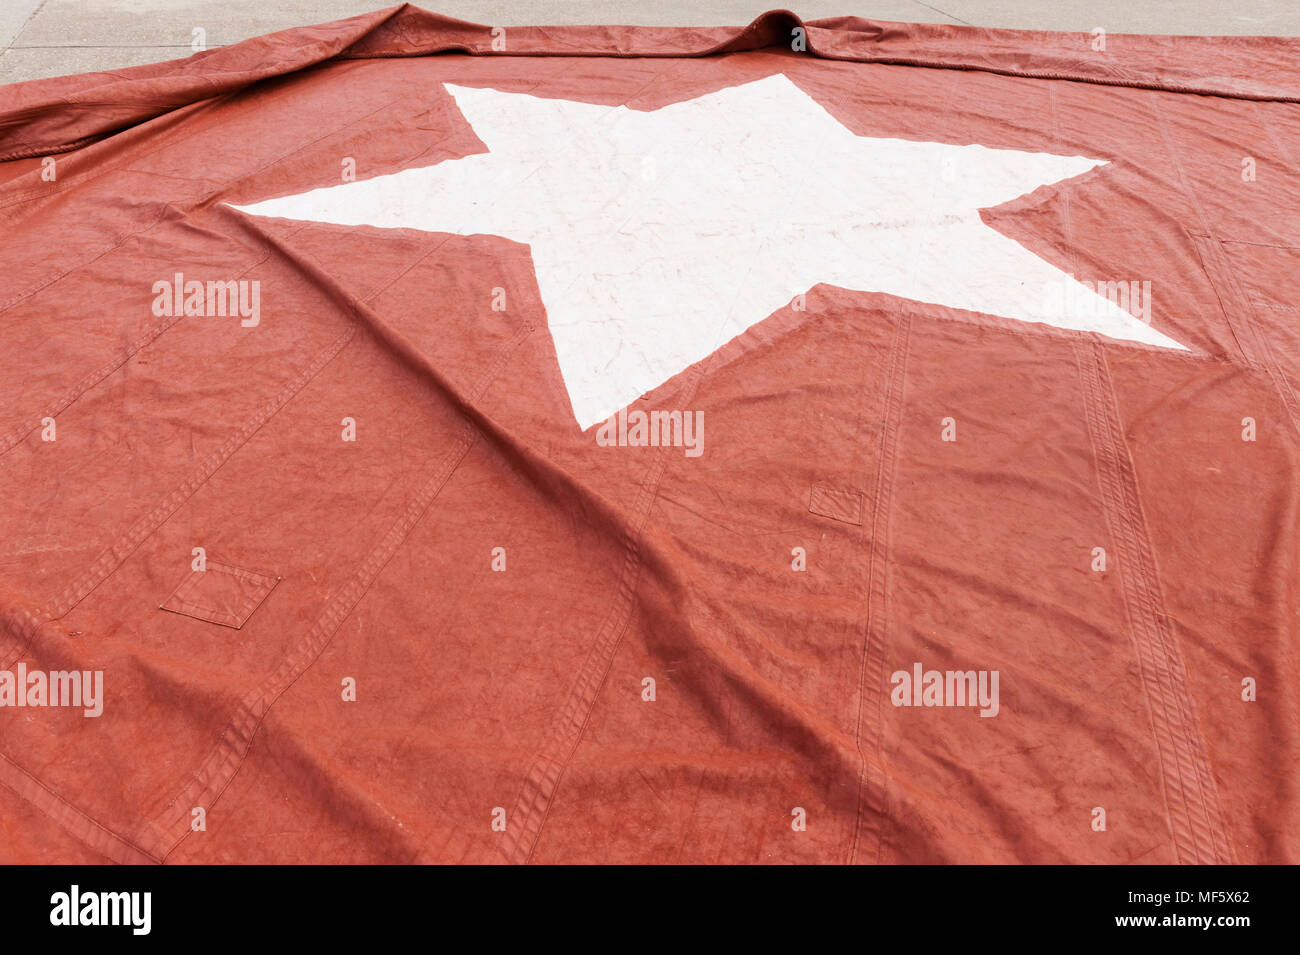 red thames barge sail laid out for painting - Stock Image